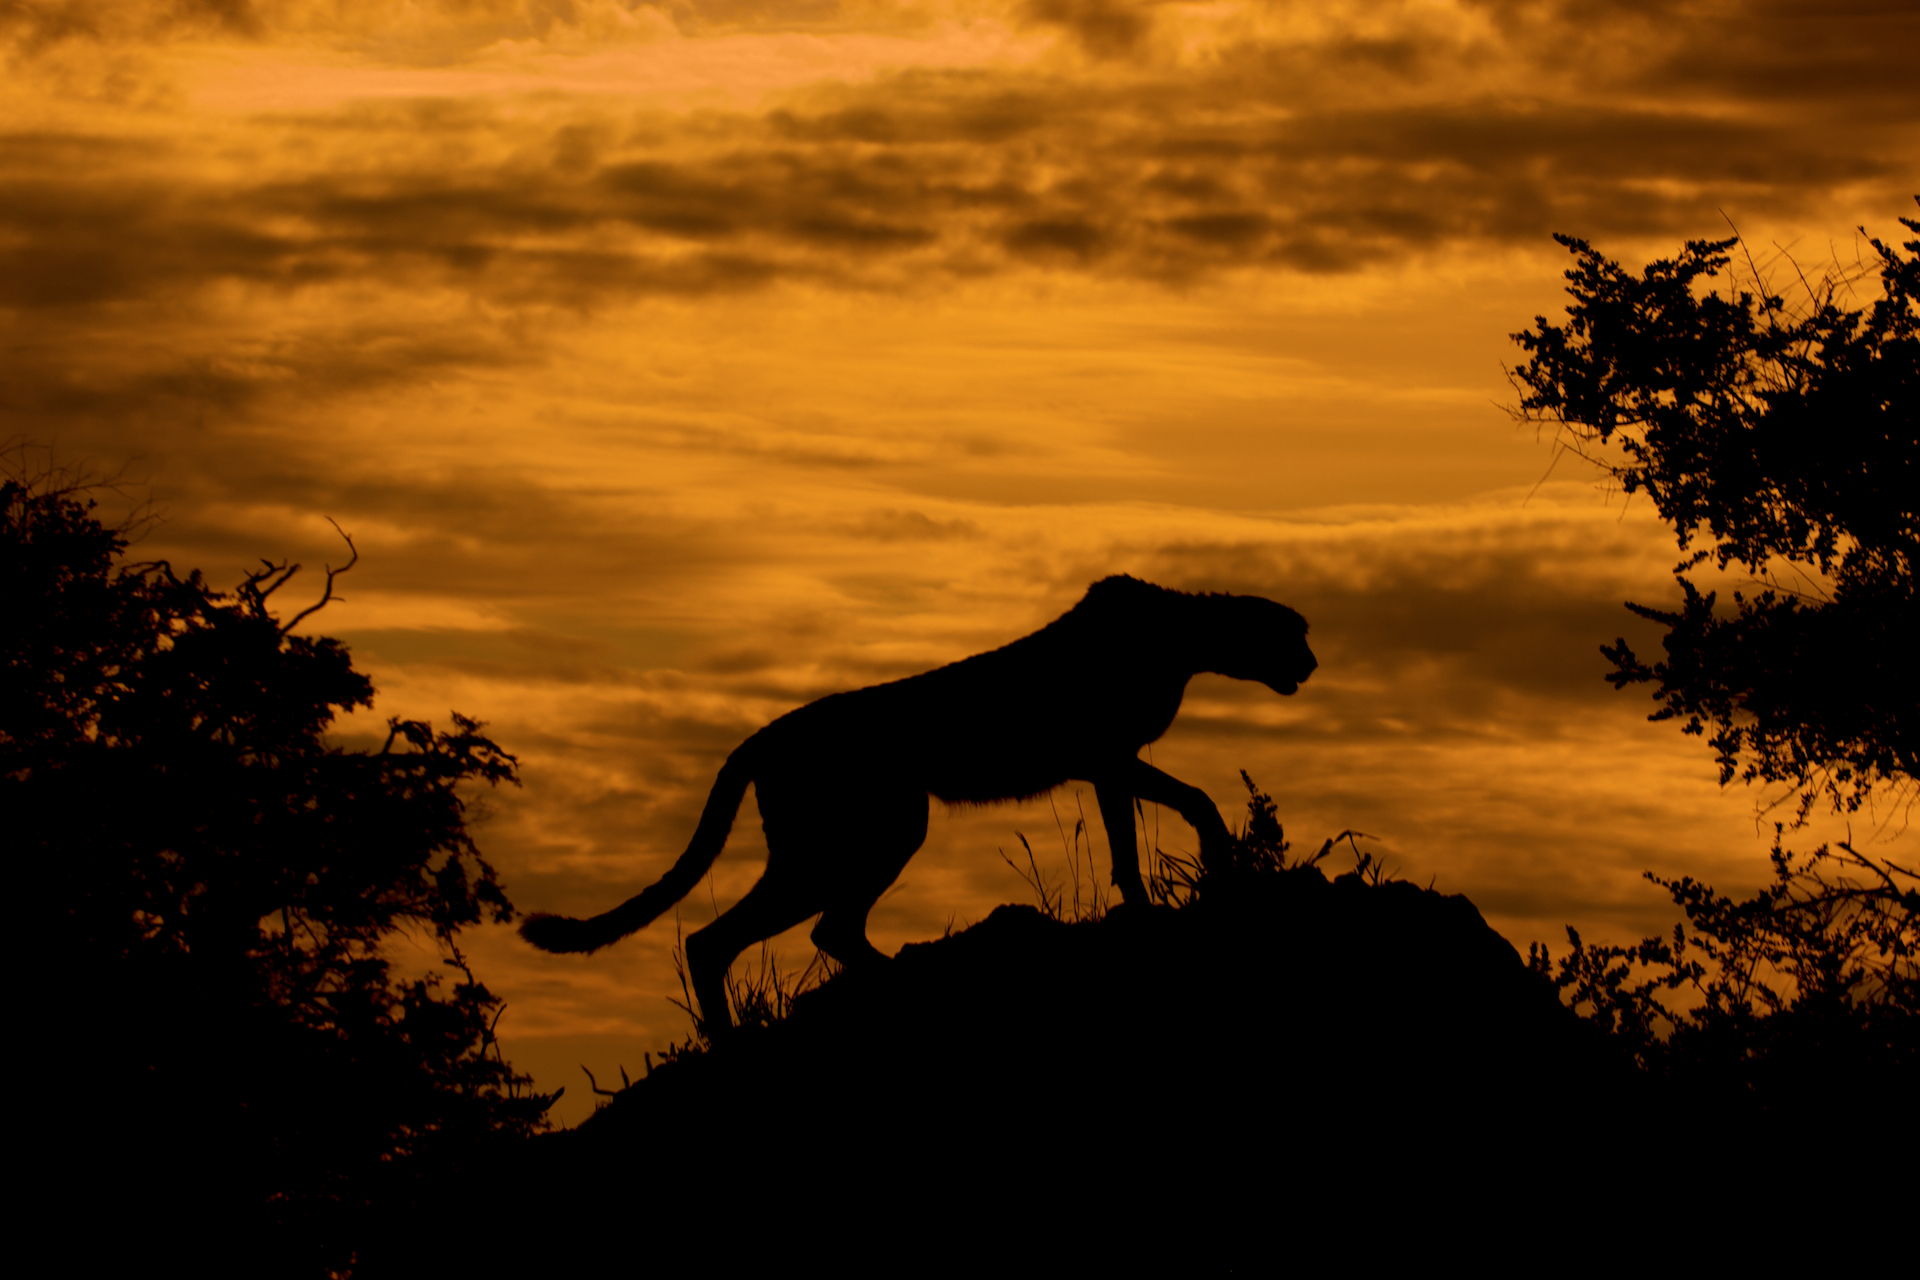 A cheetah at sunset - © Arturo de Frias Marques, Wikimedia Commons